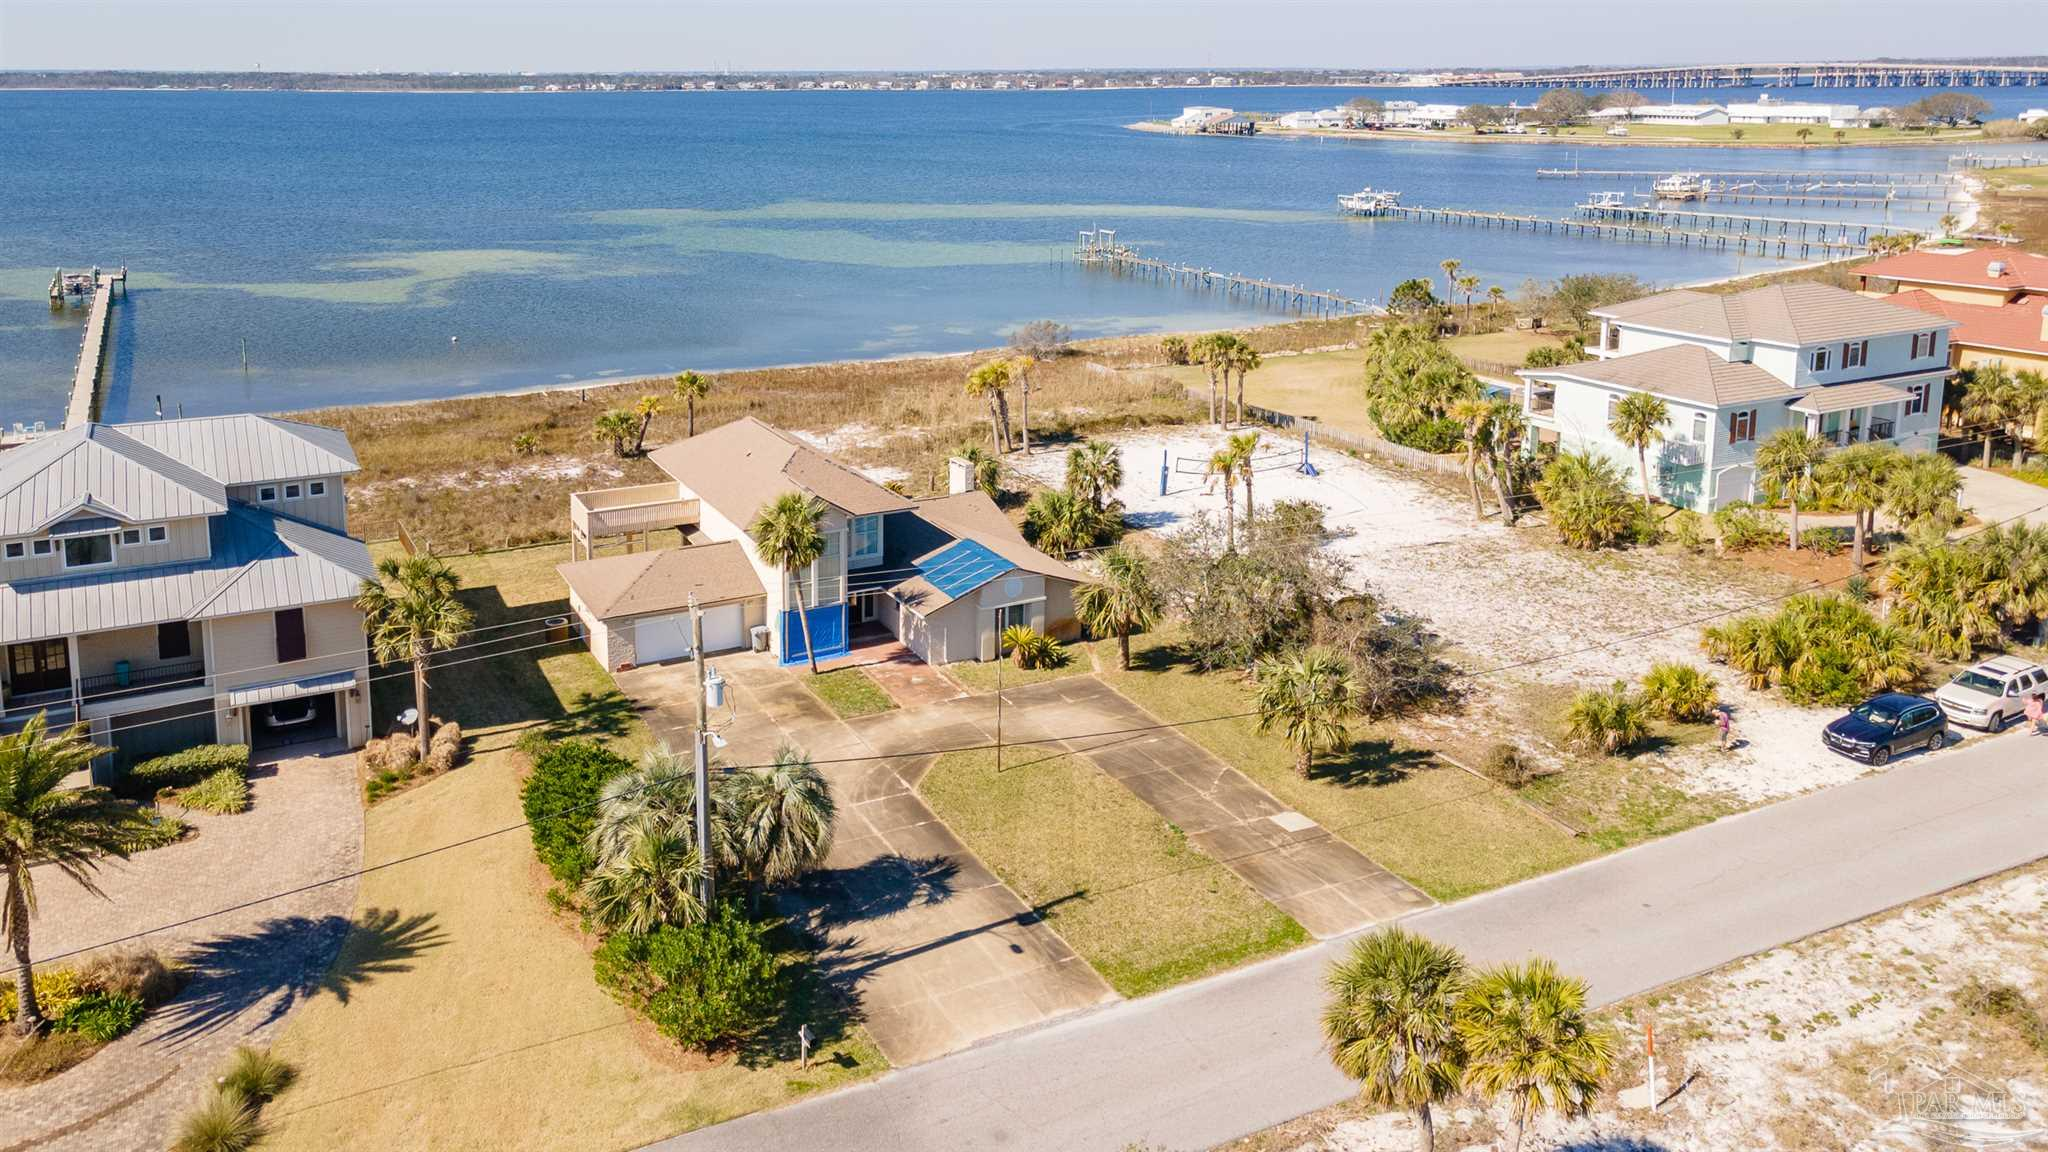 WATERFRONT on the Sound! Endless Sunsets from this more than a half acre Sound front lot!  Premier location on Sabine Drive.  Update this 4 bedroom home or build your own dream home.  You will never tire of the dolphins jumping in your backyard, bring your boat, your paddleboards, jet skis and kayaks.  This is beach living at it's best.  NO short term rentals.